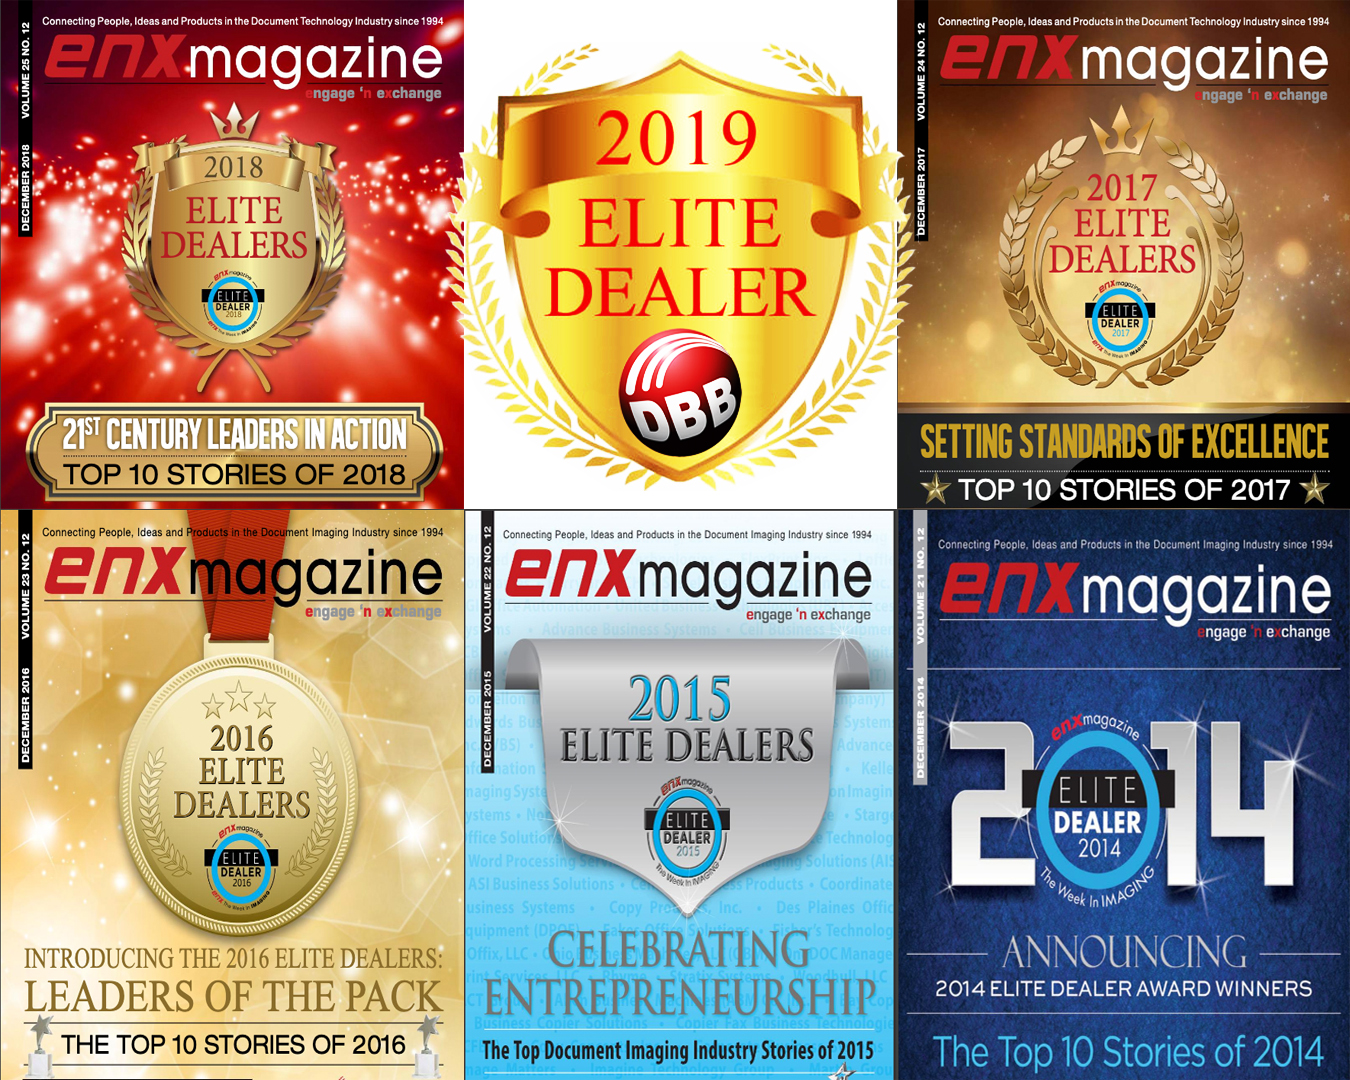 DOING BETTER BUSINESS SELECTED AS ELITE DEALER IN THE USA!